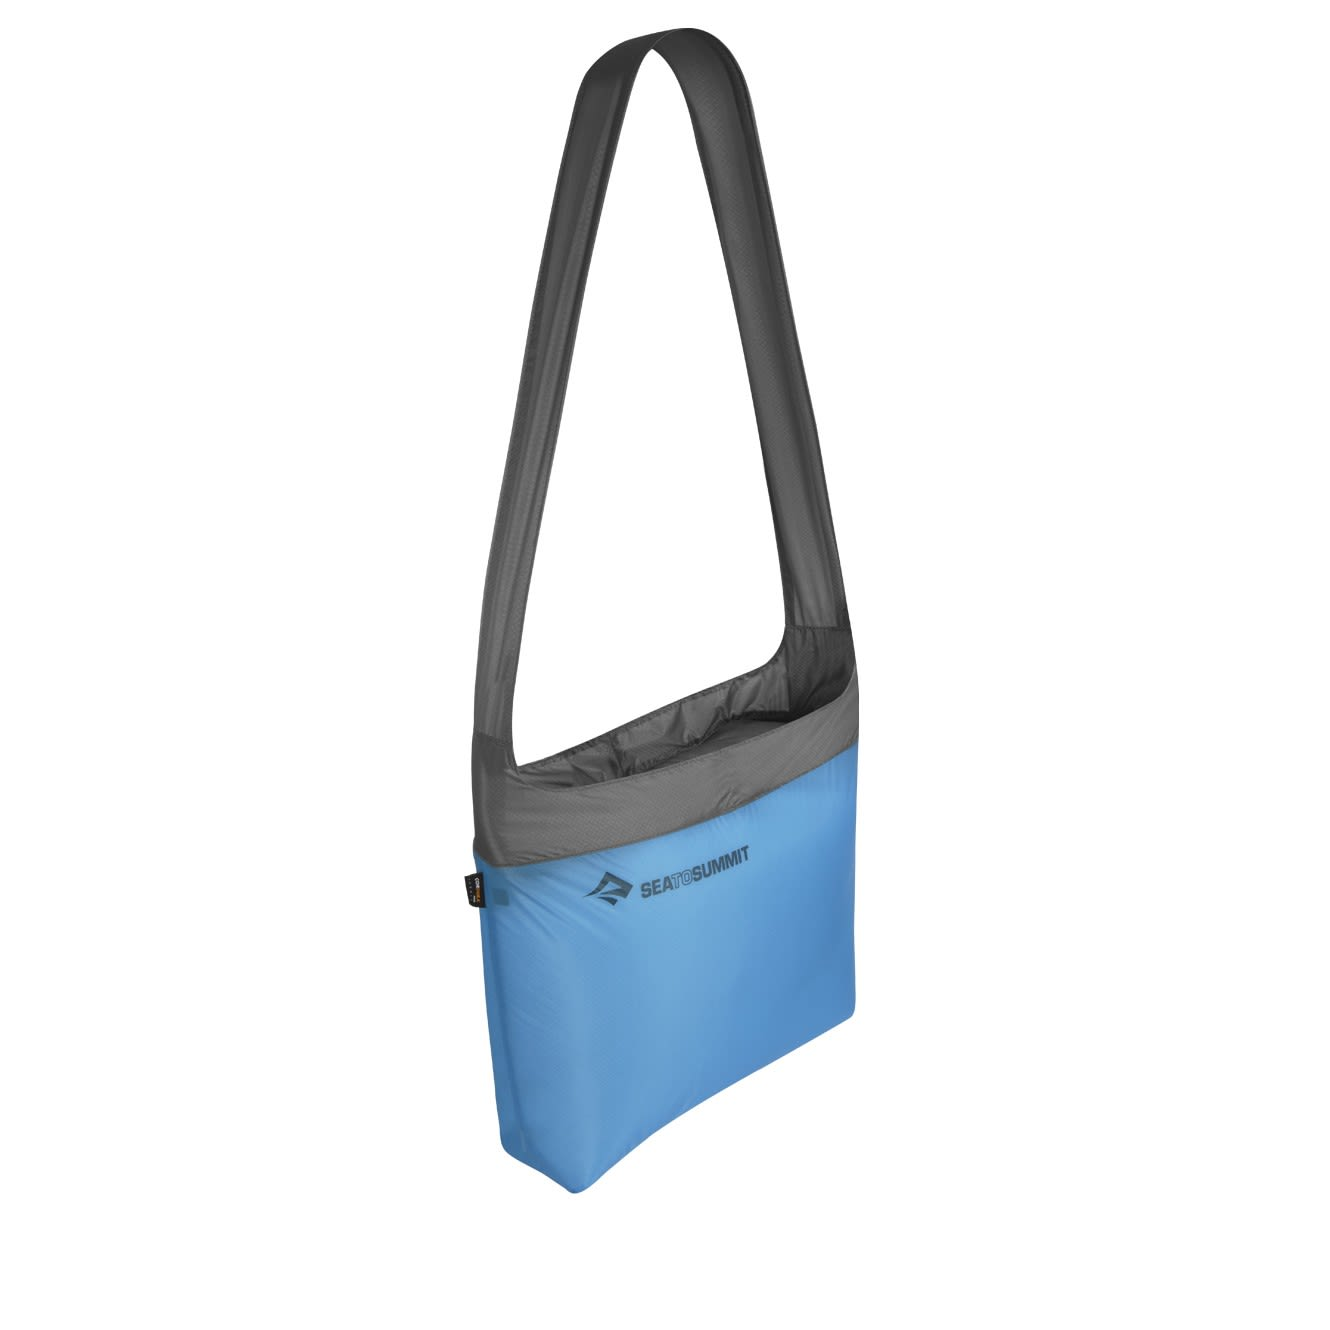 Sea to Summit Ultra-SIL Sling Bag Blau, Einkaufstasche, 16l